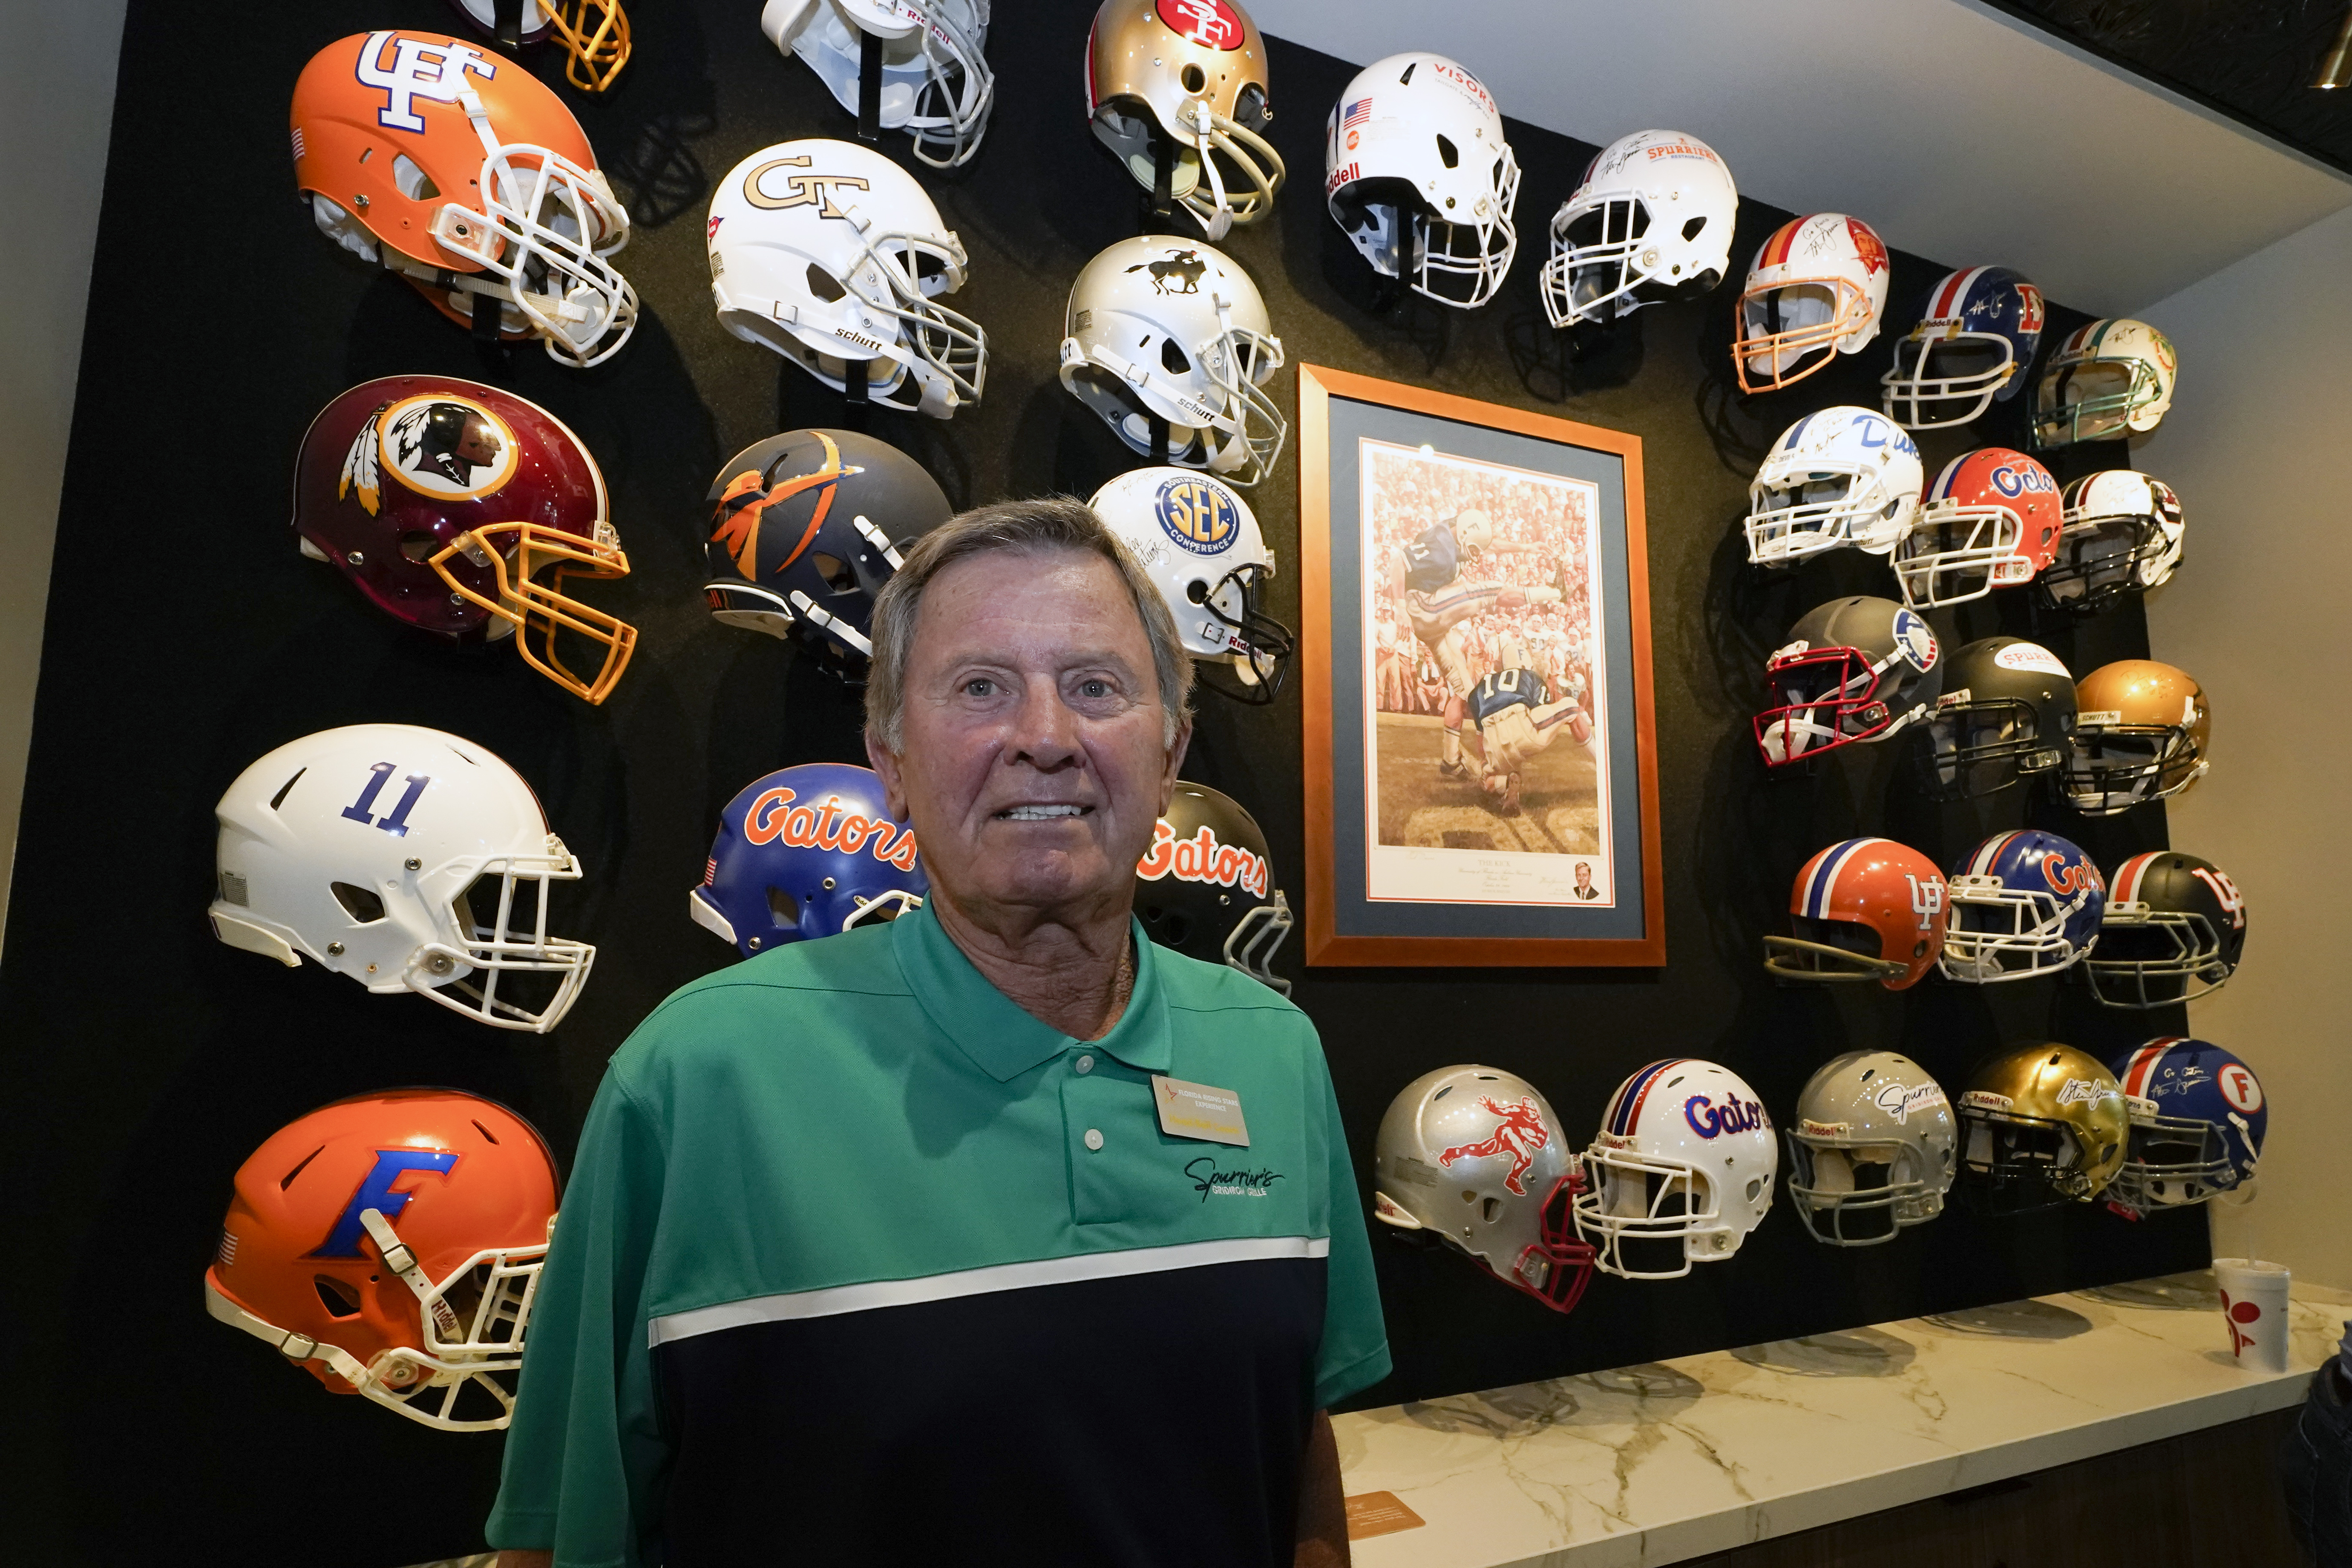 Steve Spurrier stands in front of a display of helmets of teams that he previously played for or coached at his new restaurant, the Gridiron Grill, in Gainesville, Florida. The restaurant doubles as Spurrier's personal museum.